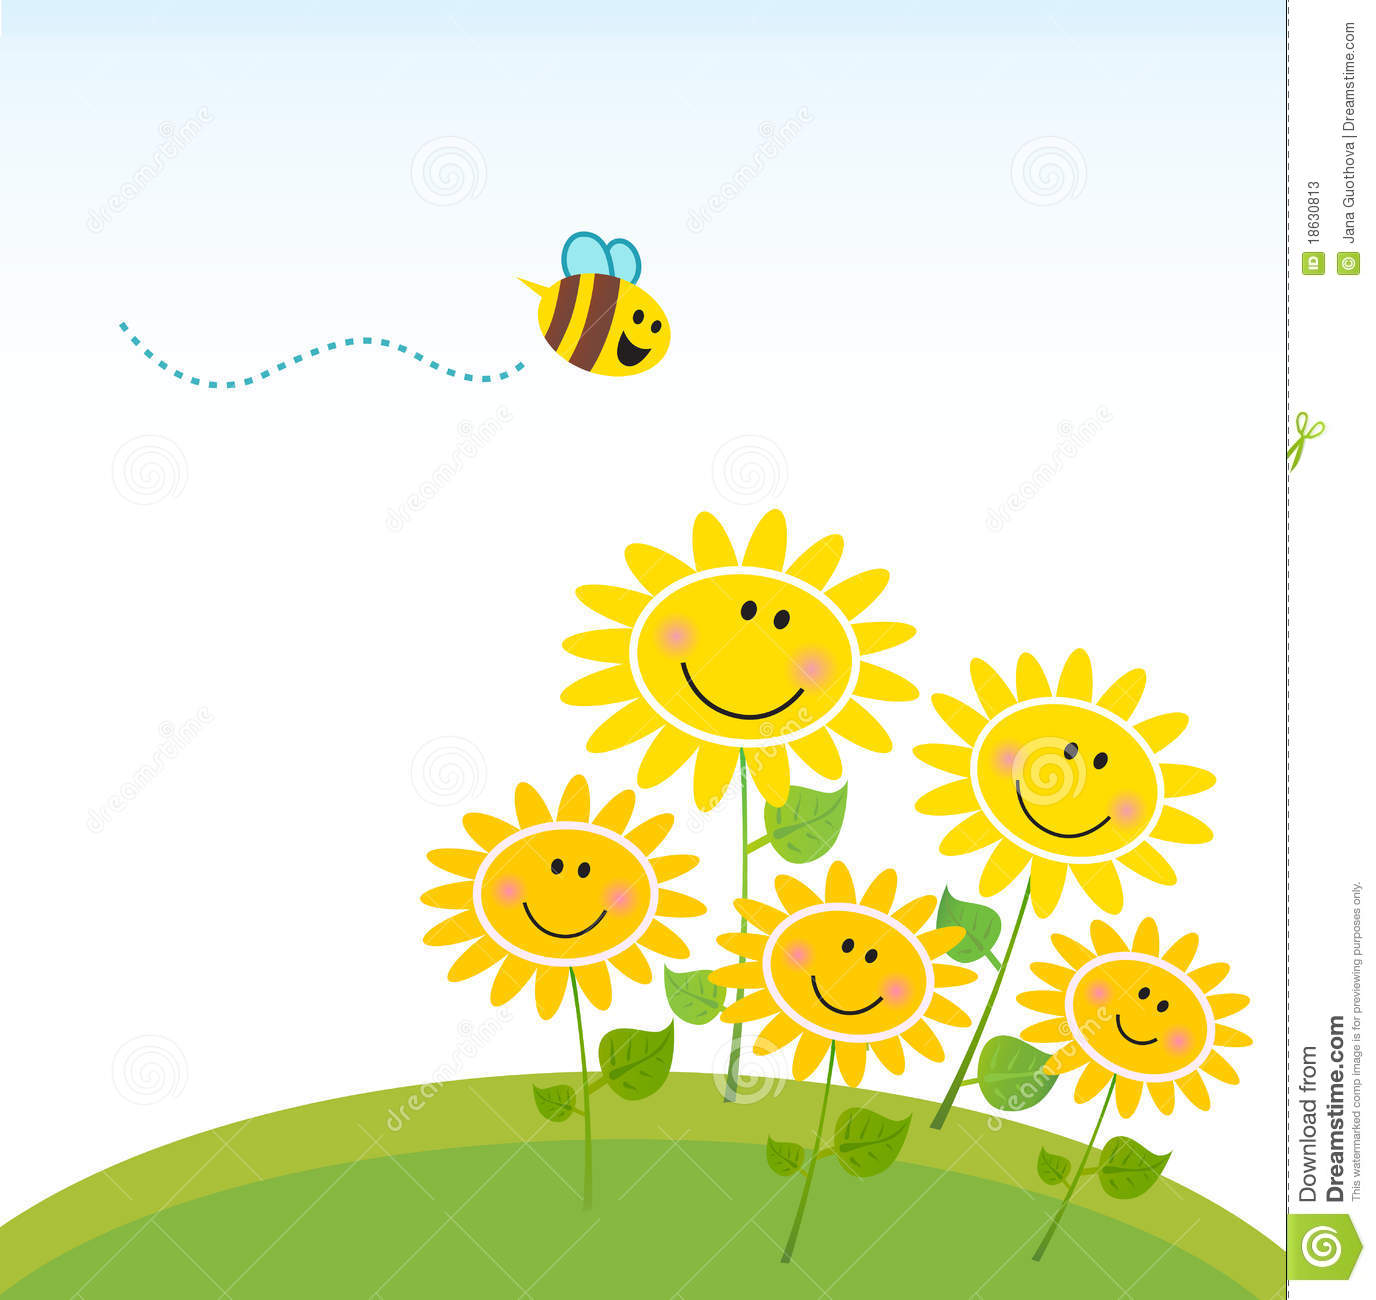 Flowers and bees clipart png royalty free stock Honey bee on flowers clipart - ClipartFest png royalty free stock